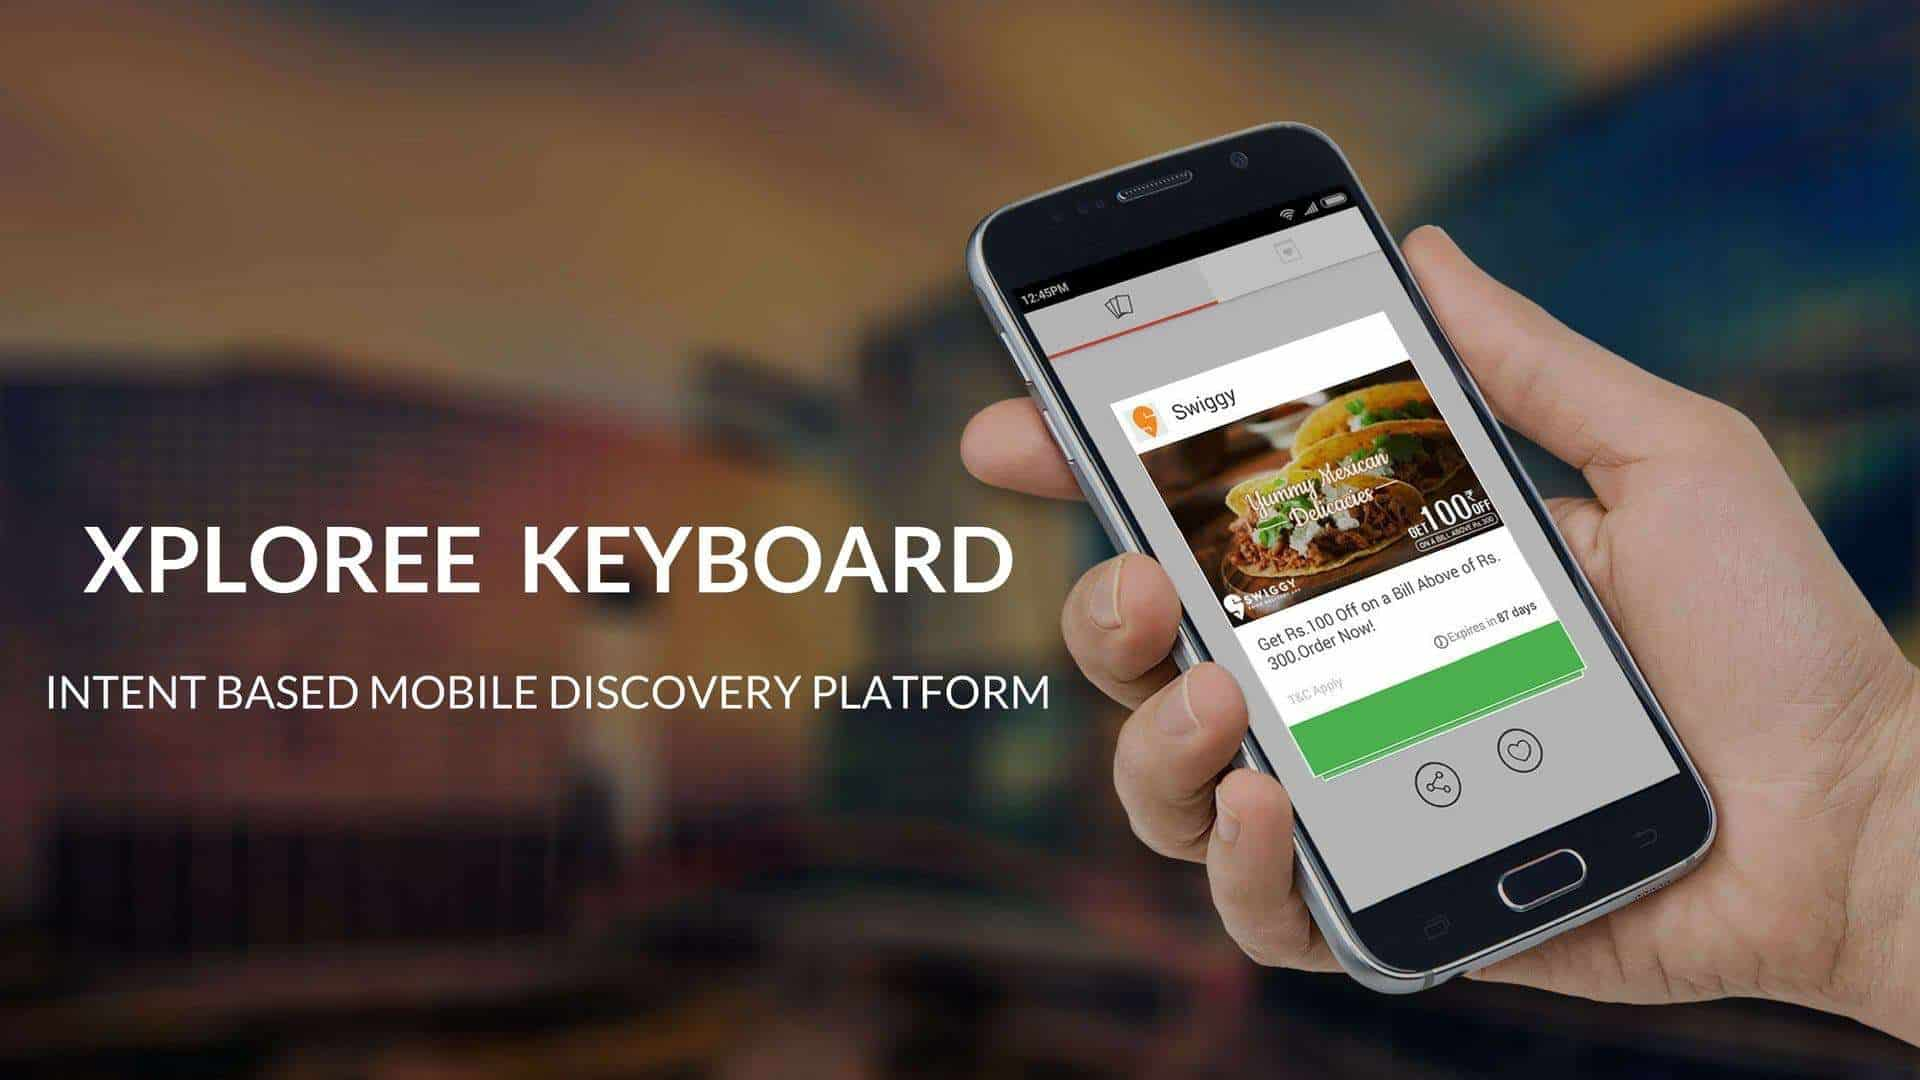 Xploree Keyboard